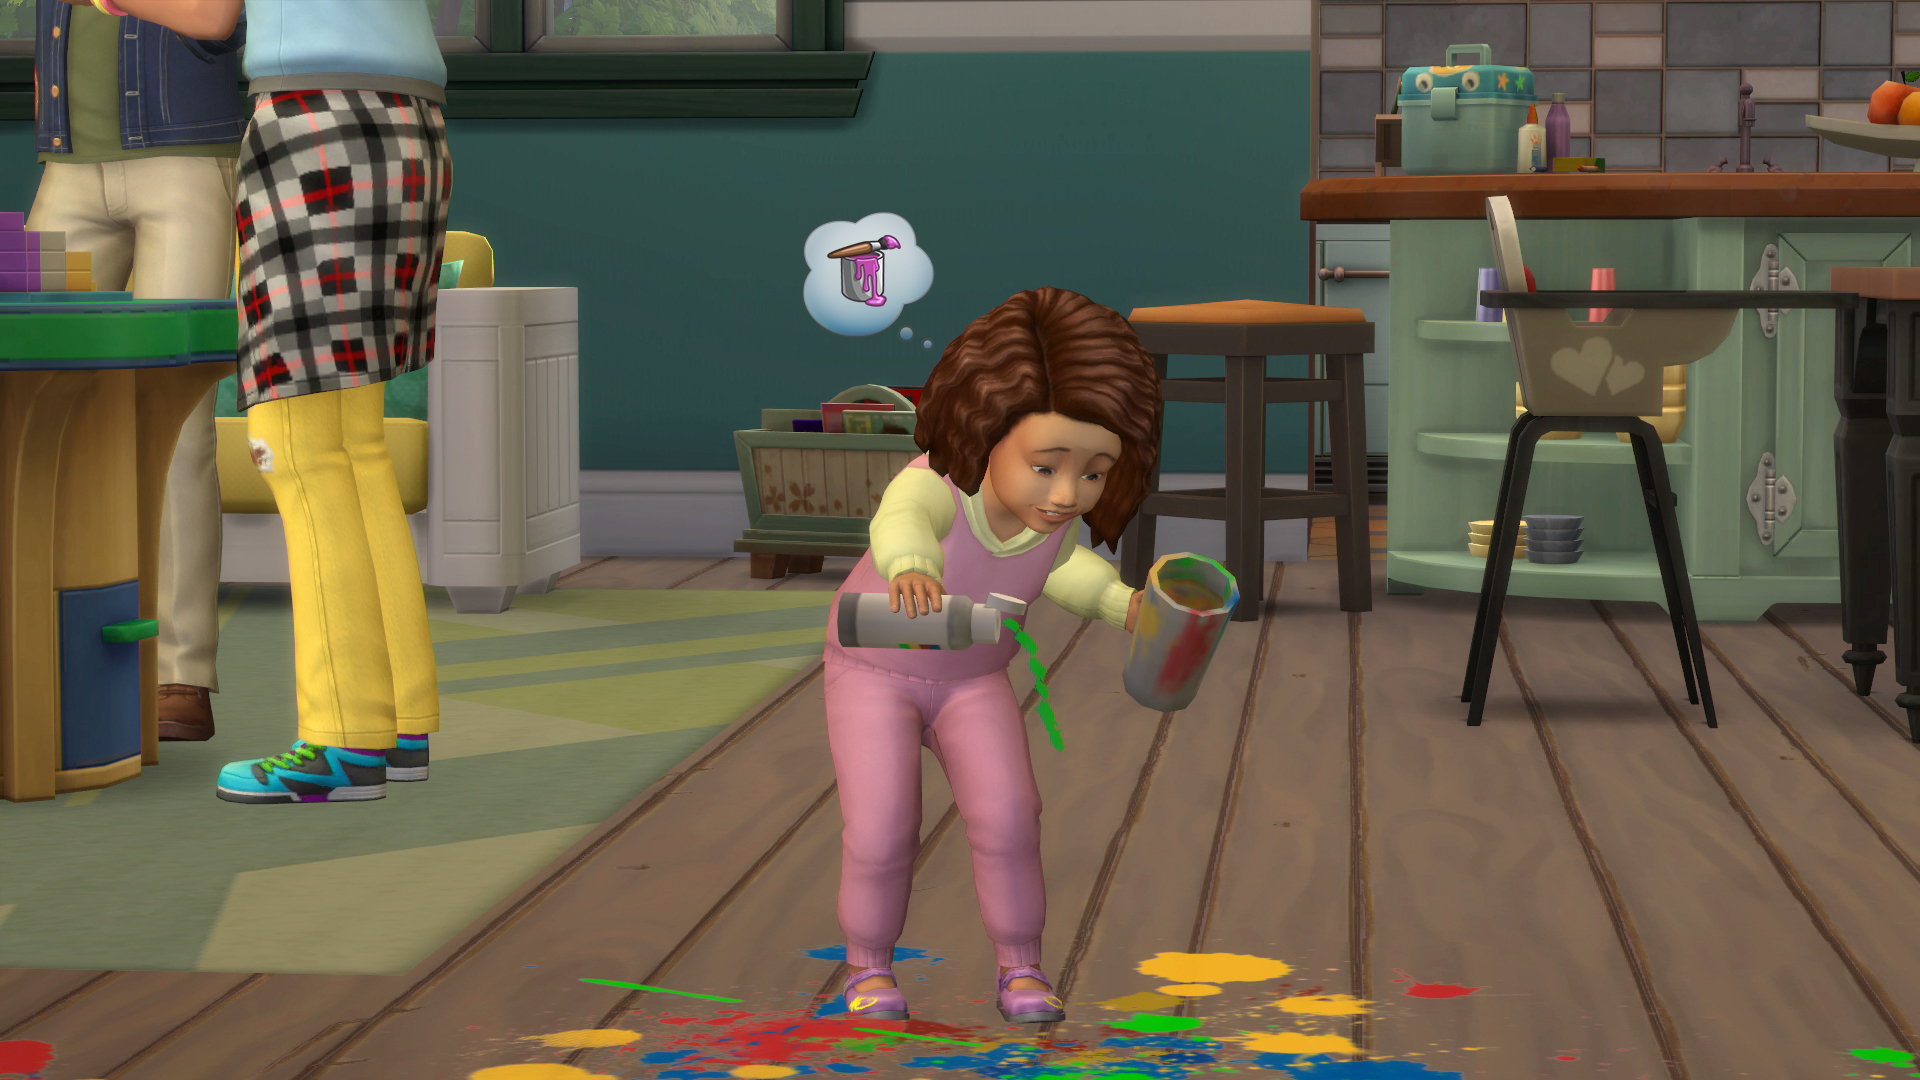 Sims 4 Quarterly Teaser Confirms Toddlers Dlc Players